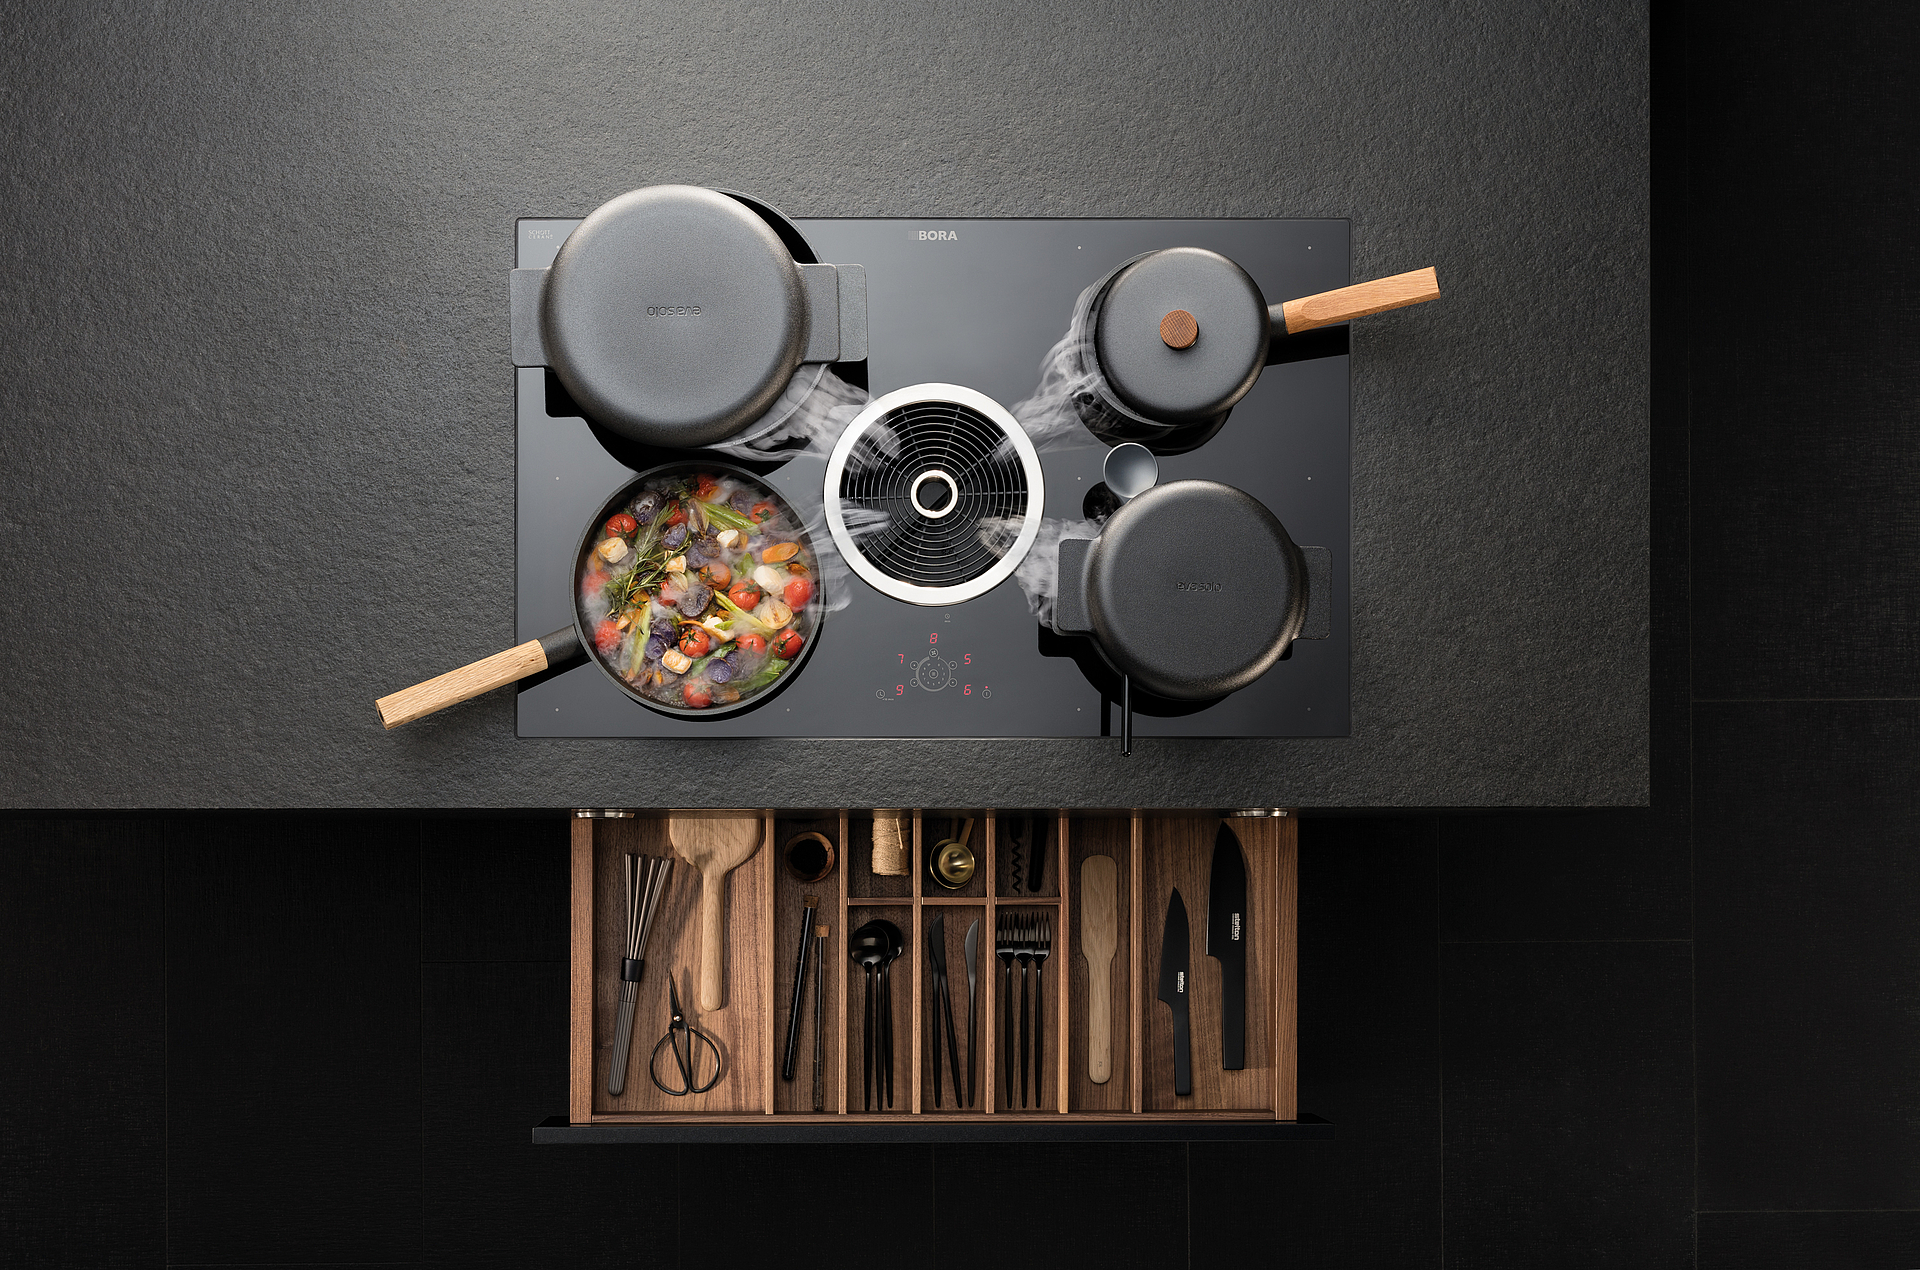 Surface induction cooktop